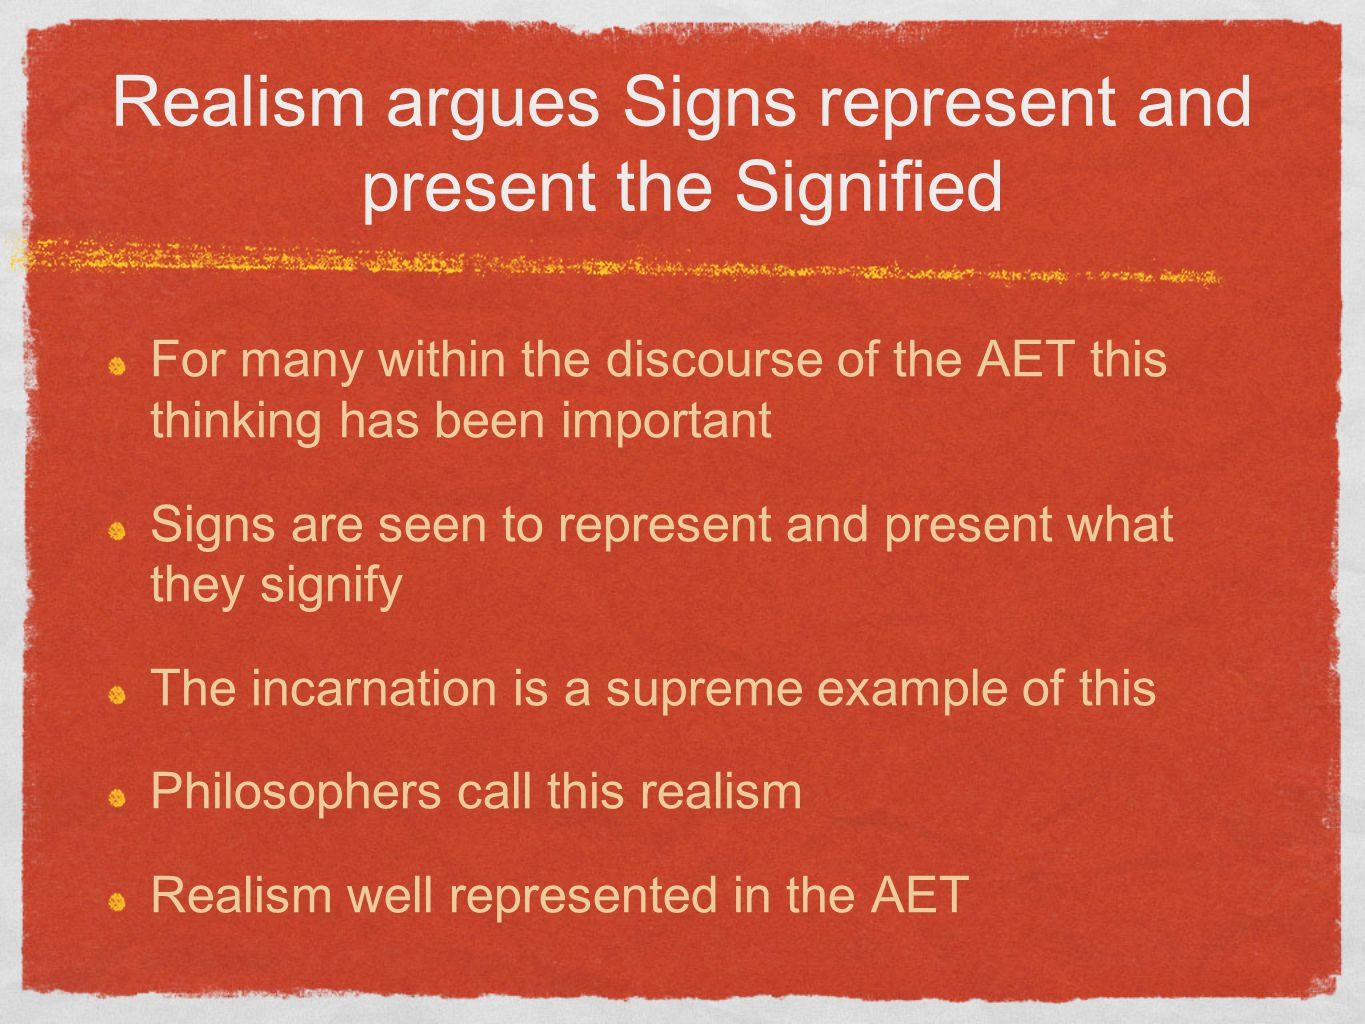 Realism argues Signs represent and present the Signified For many within the discourse of the AET this thinking has been important Signs are seen to represent and present what they signify The incarnation is a supreme example of this Philosophers call this realism Realism well represented in the AET